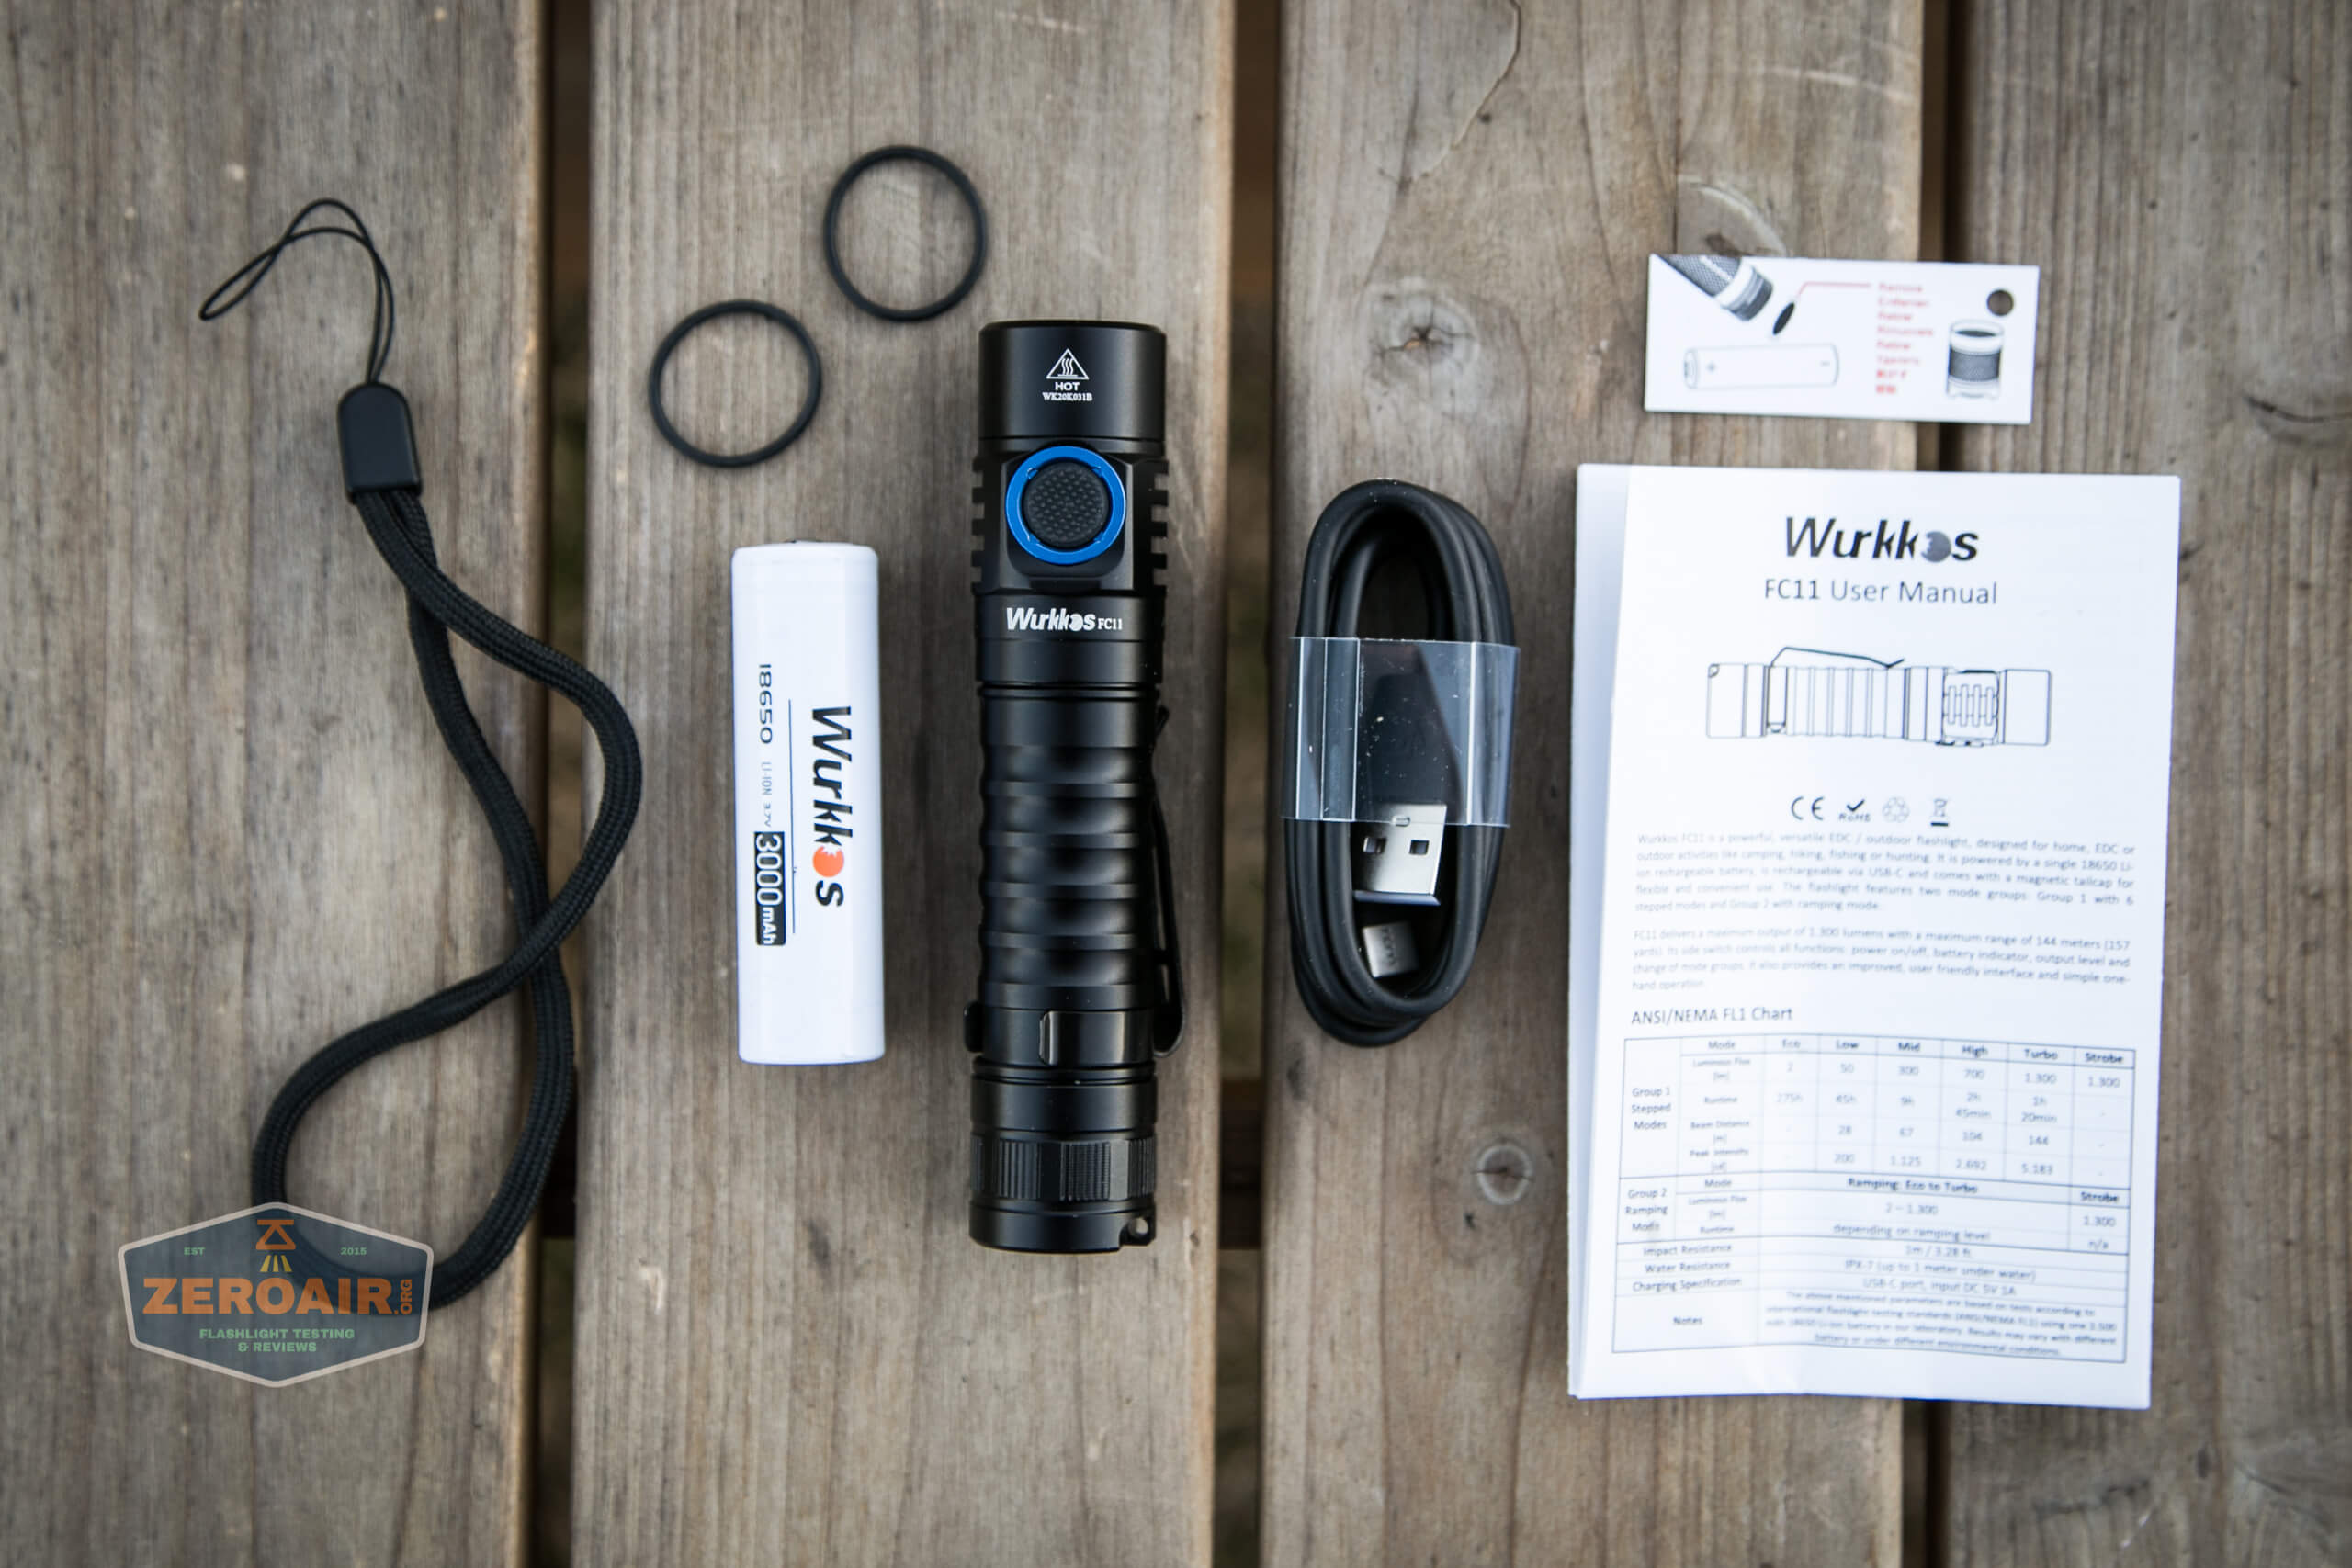 wurkkos fc11 flashlight what's included